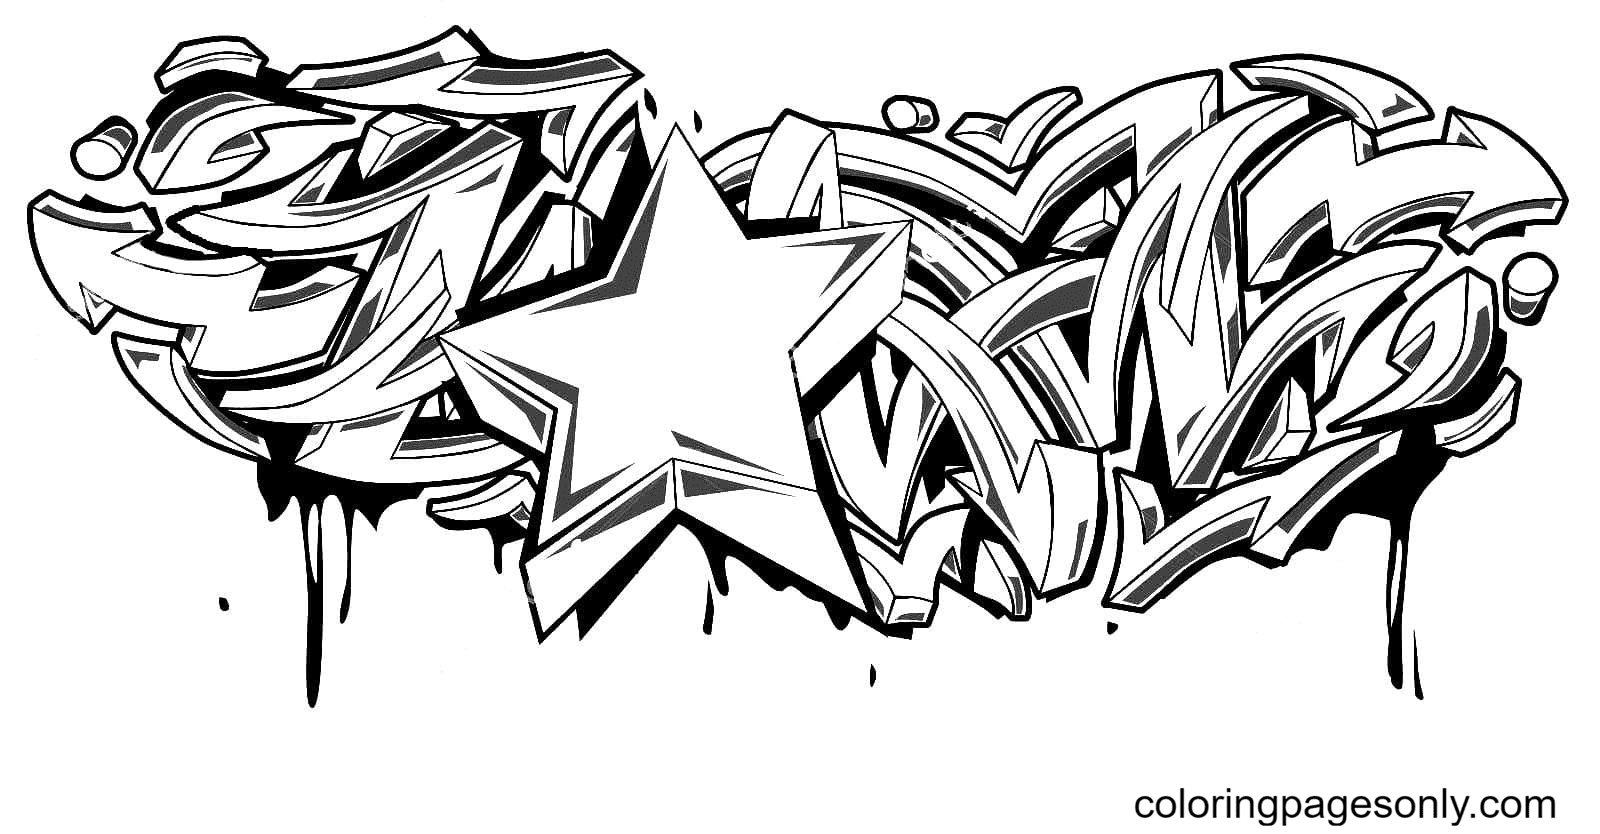 With a star Coloring Page